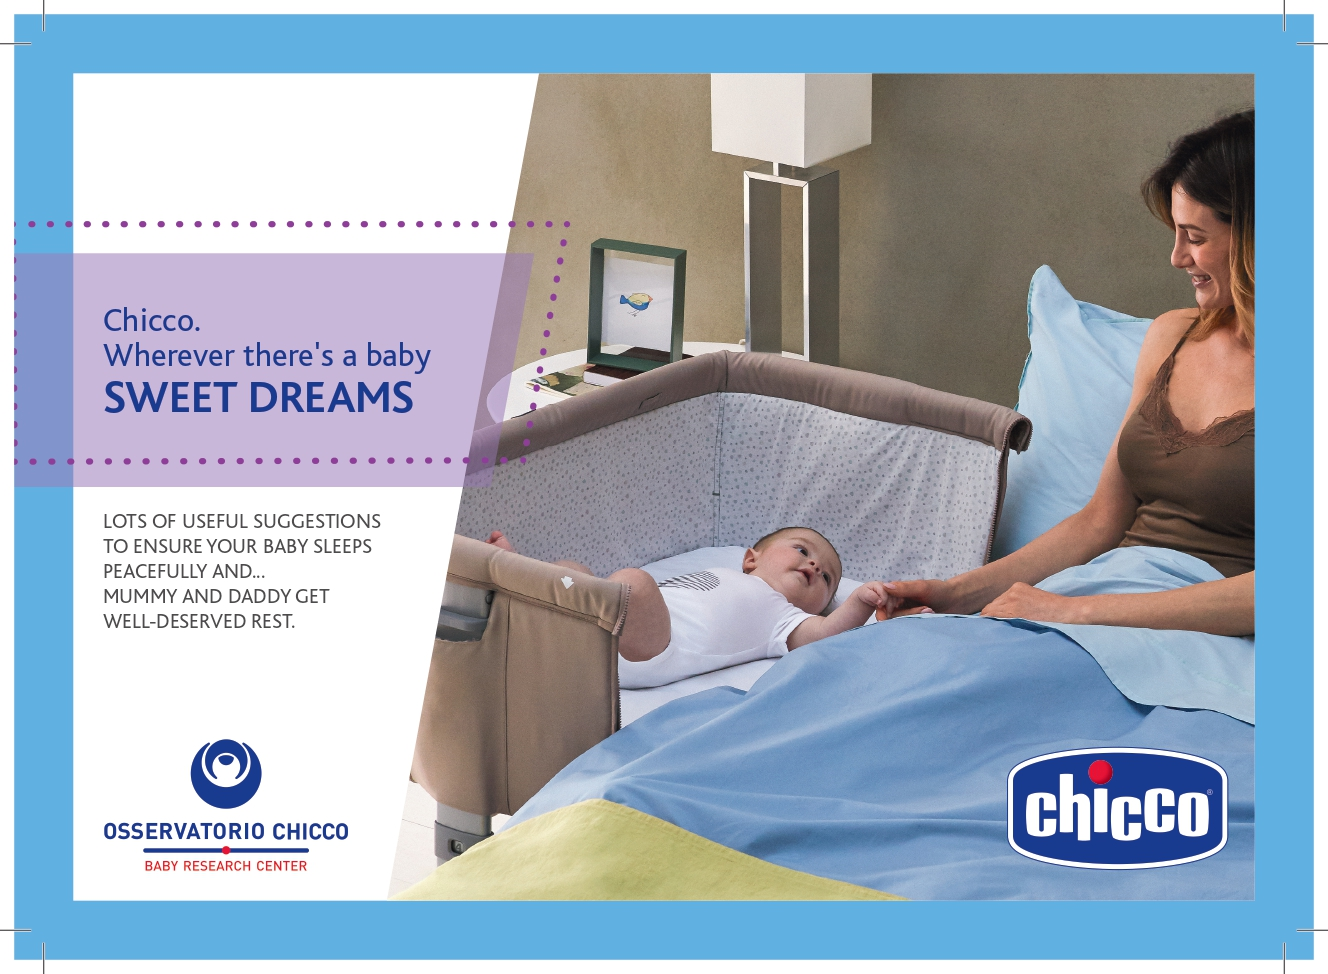 sleep-guide2019-eng-osservatorio-chicco-080319-page-0001.jpg